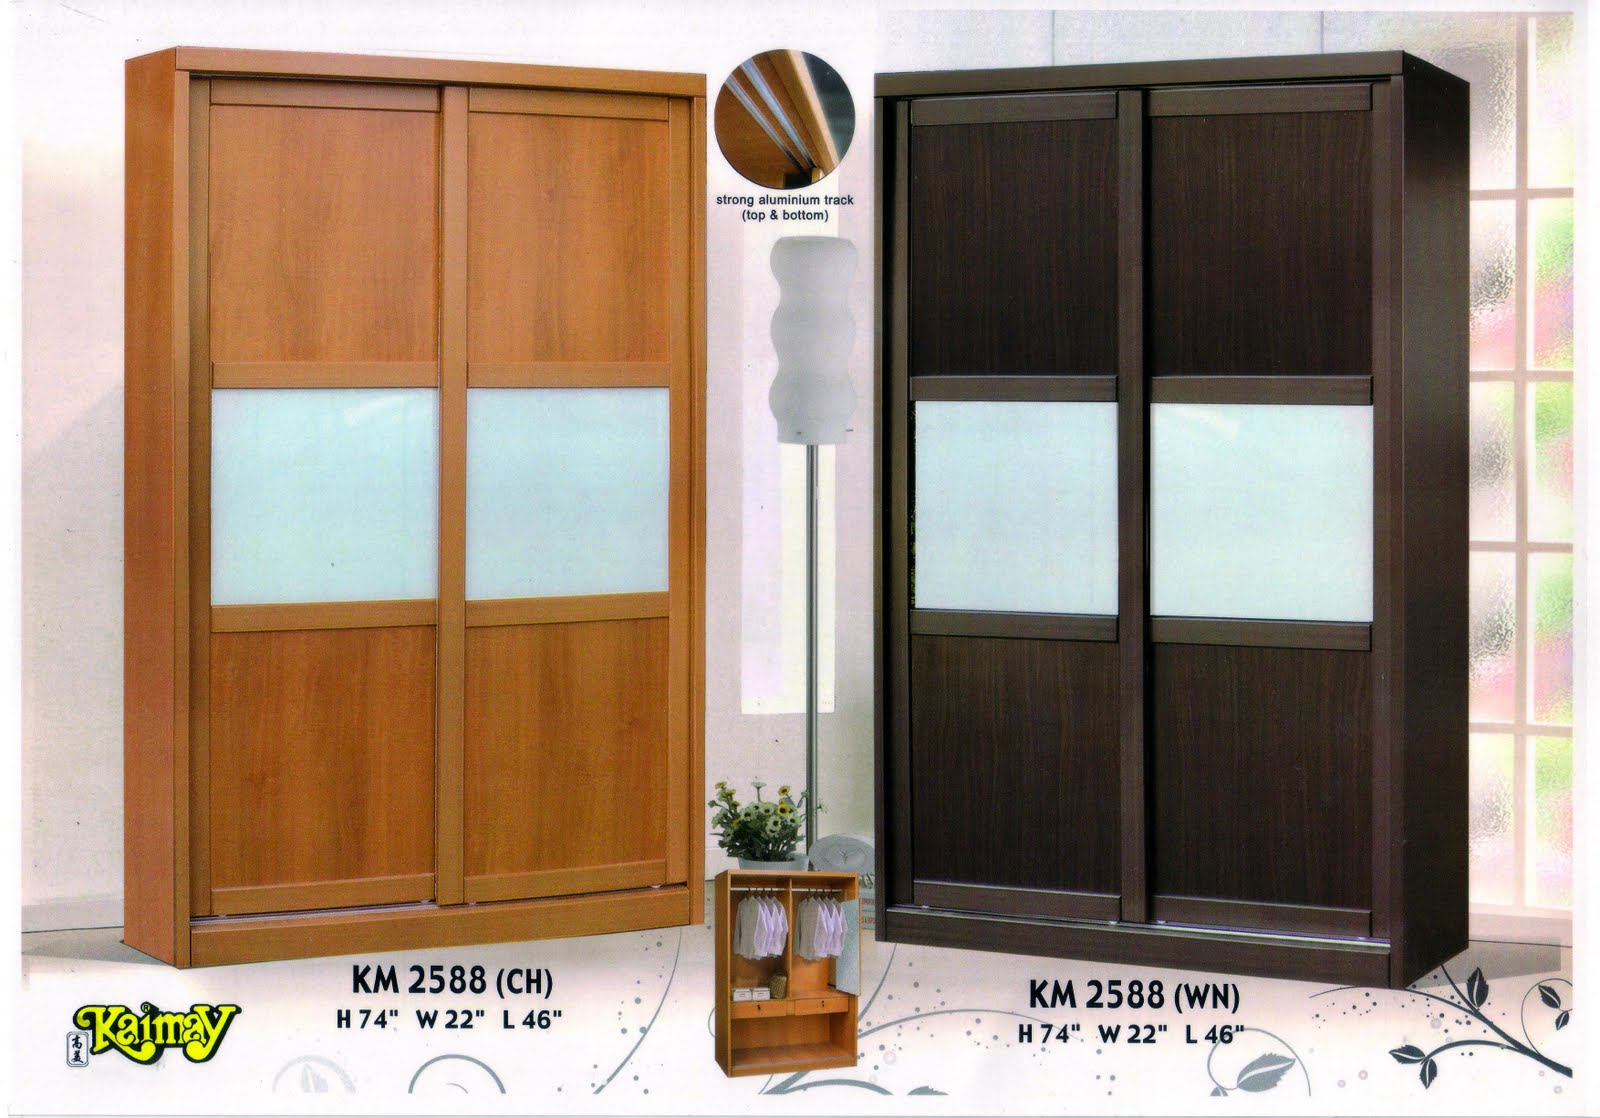 Outstanding Wardrobe Closet with Sliding Doors 1600 x 1118 · 198 kB · jpeg